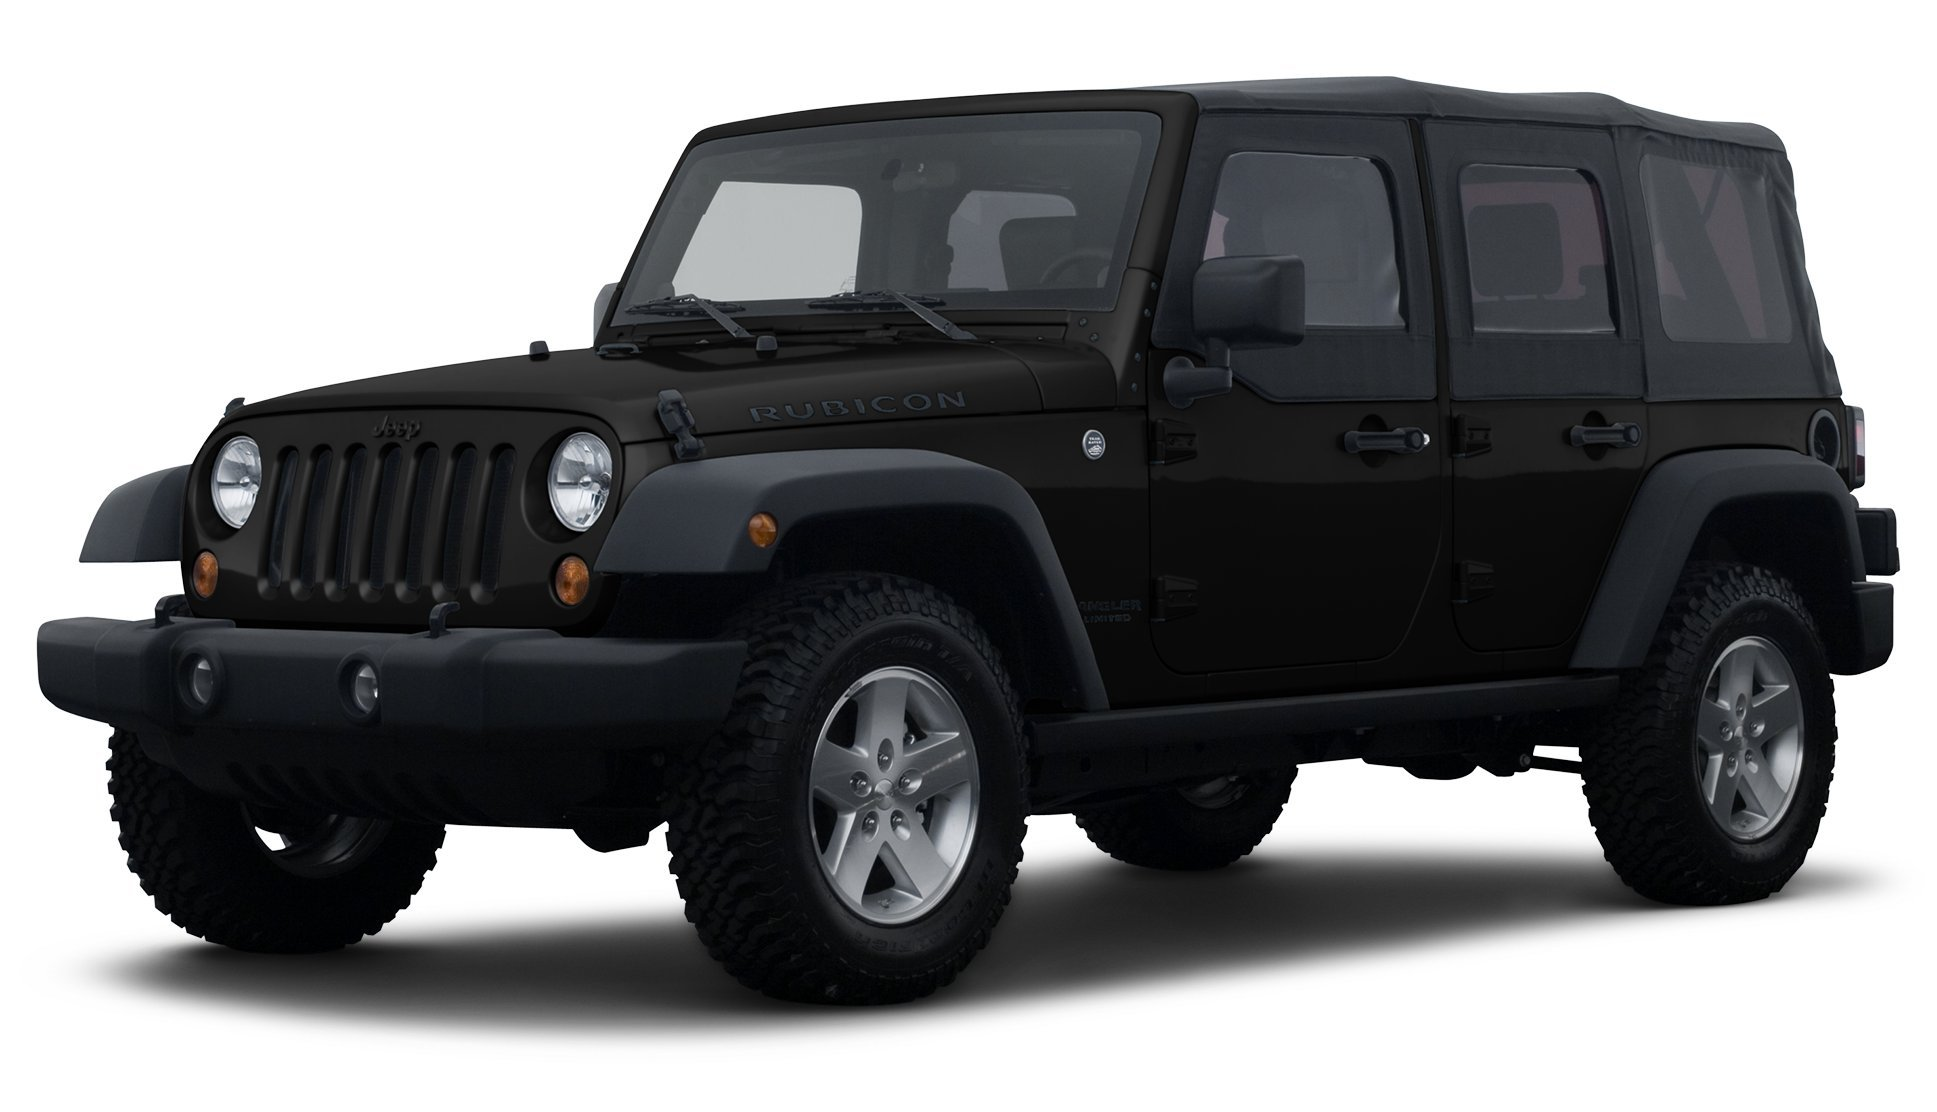 2008 Hummer H3 Reviews Images And Specs Vehicles 1982 Chevy Dome Light Wiring Schematic Manual Transmission Jeep Wrangler Unlimited Rubicon 4 Wheel Drive Door